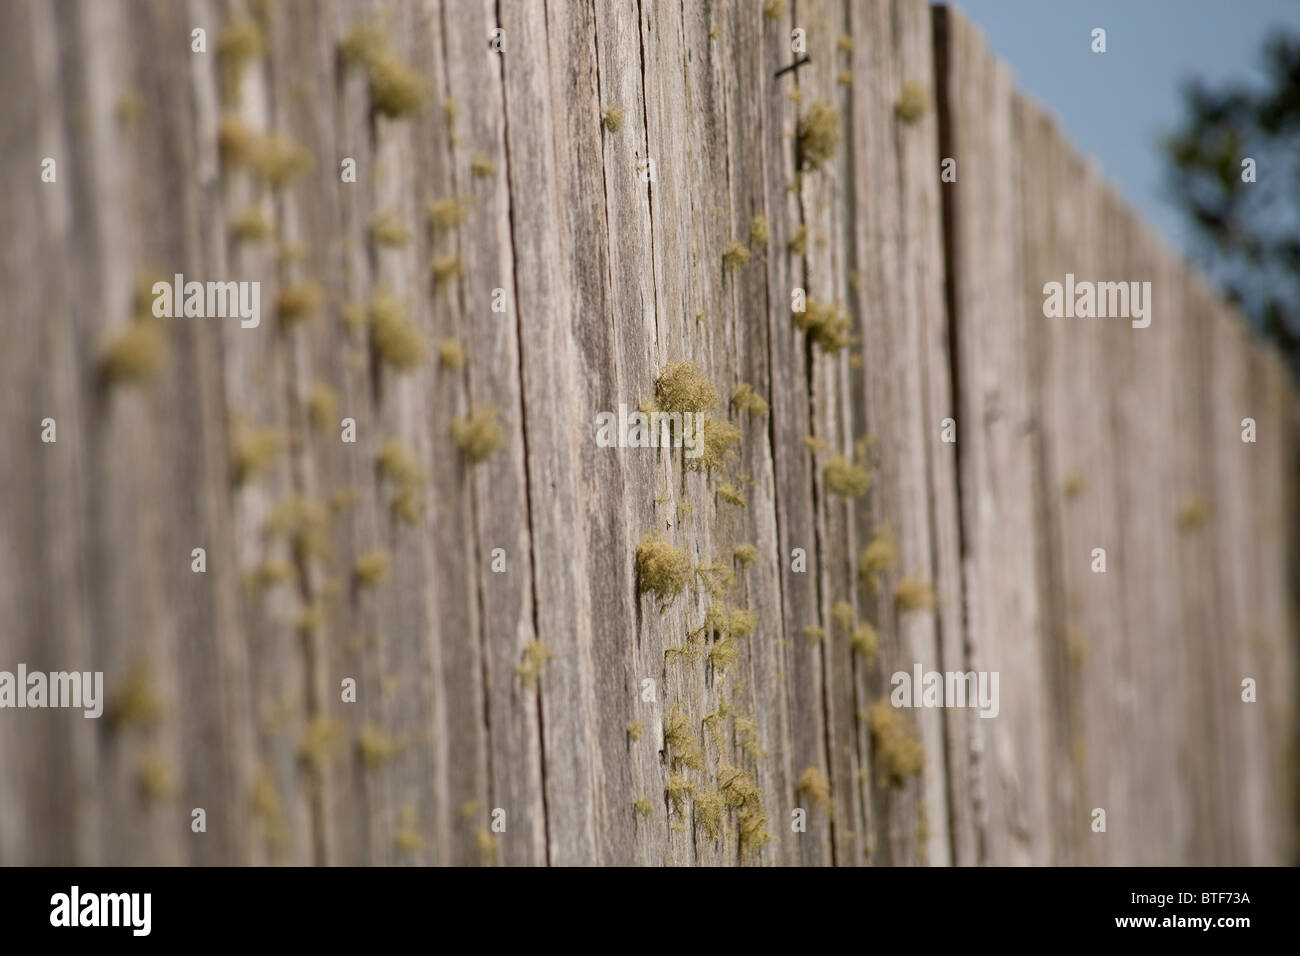 Mossy fence - Stock Image